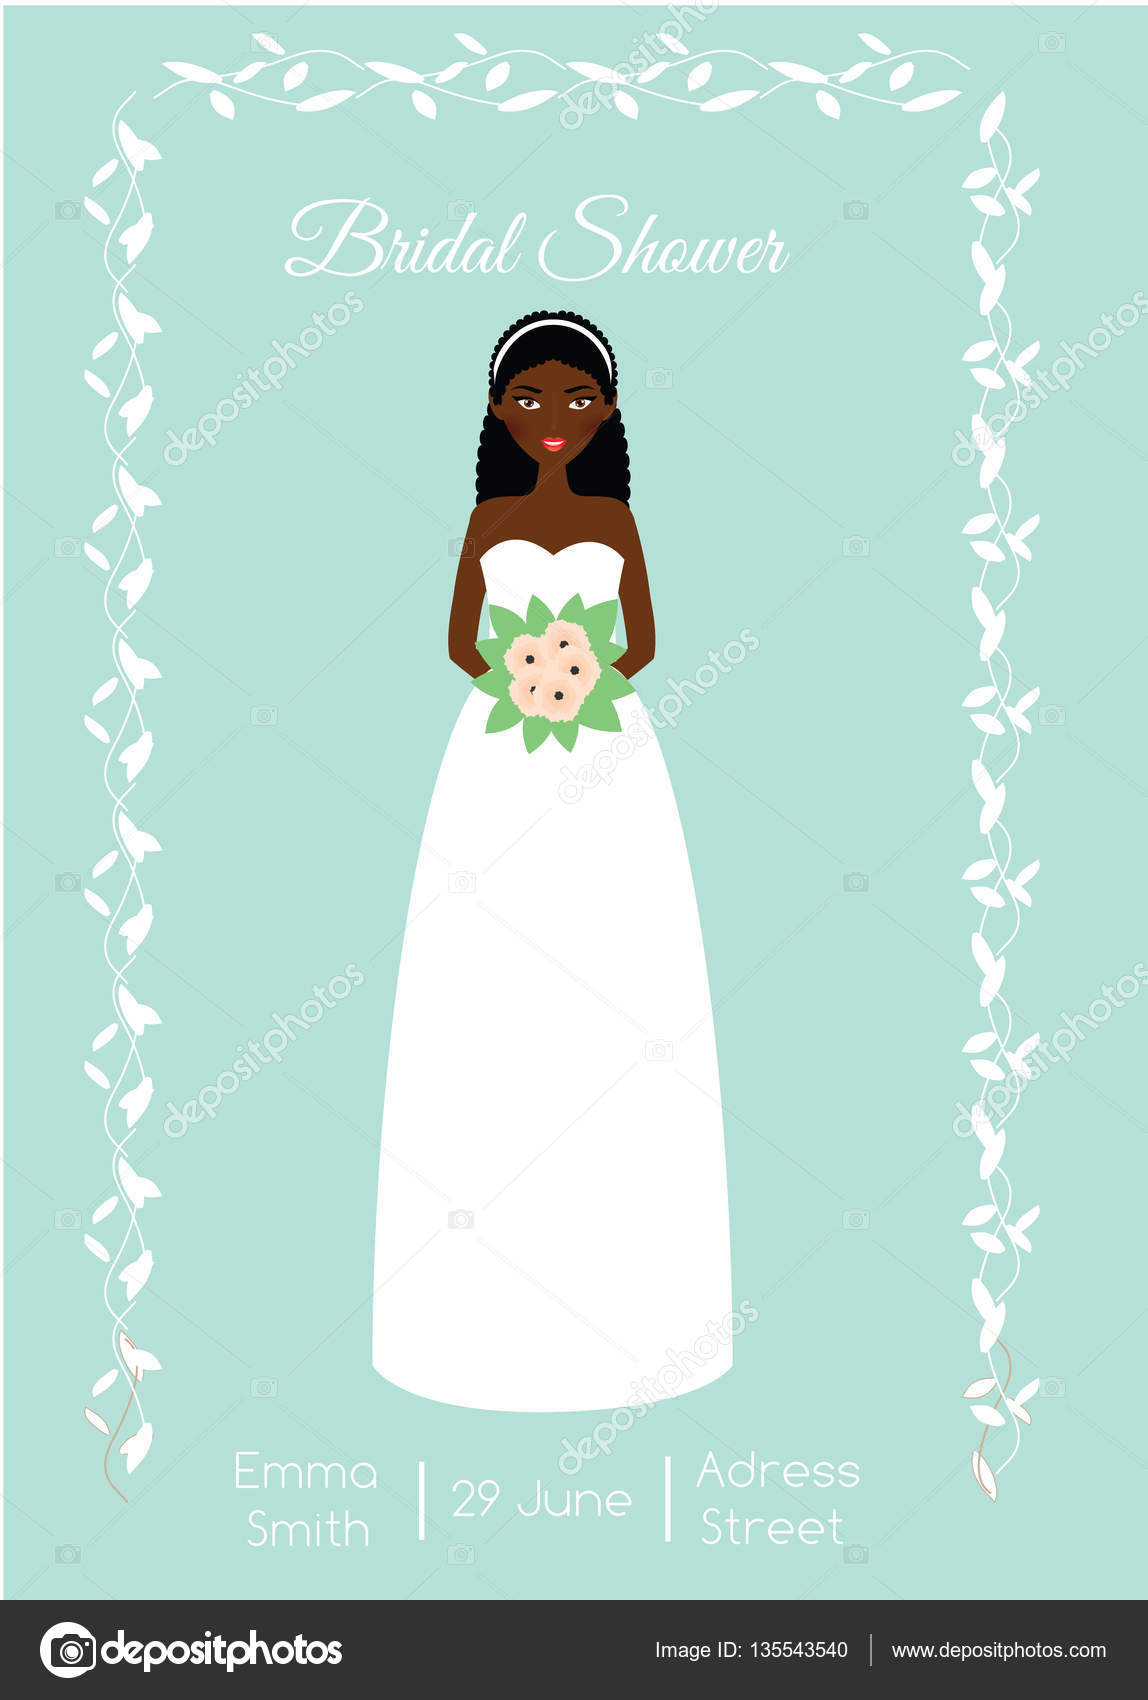 Bridal Shower Card With Smiling Happy Bride African American Woman - Bridal shower card template